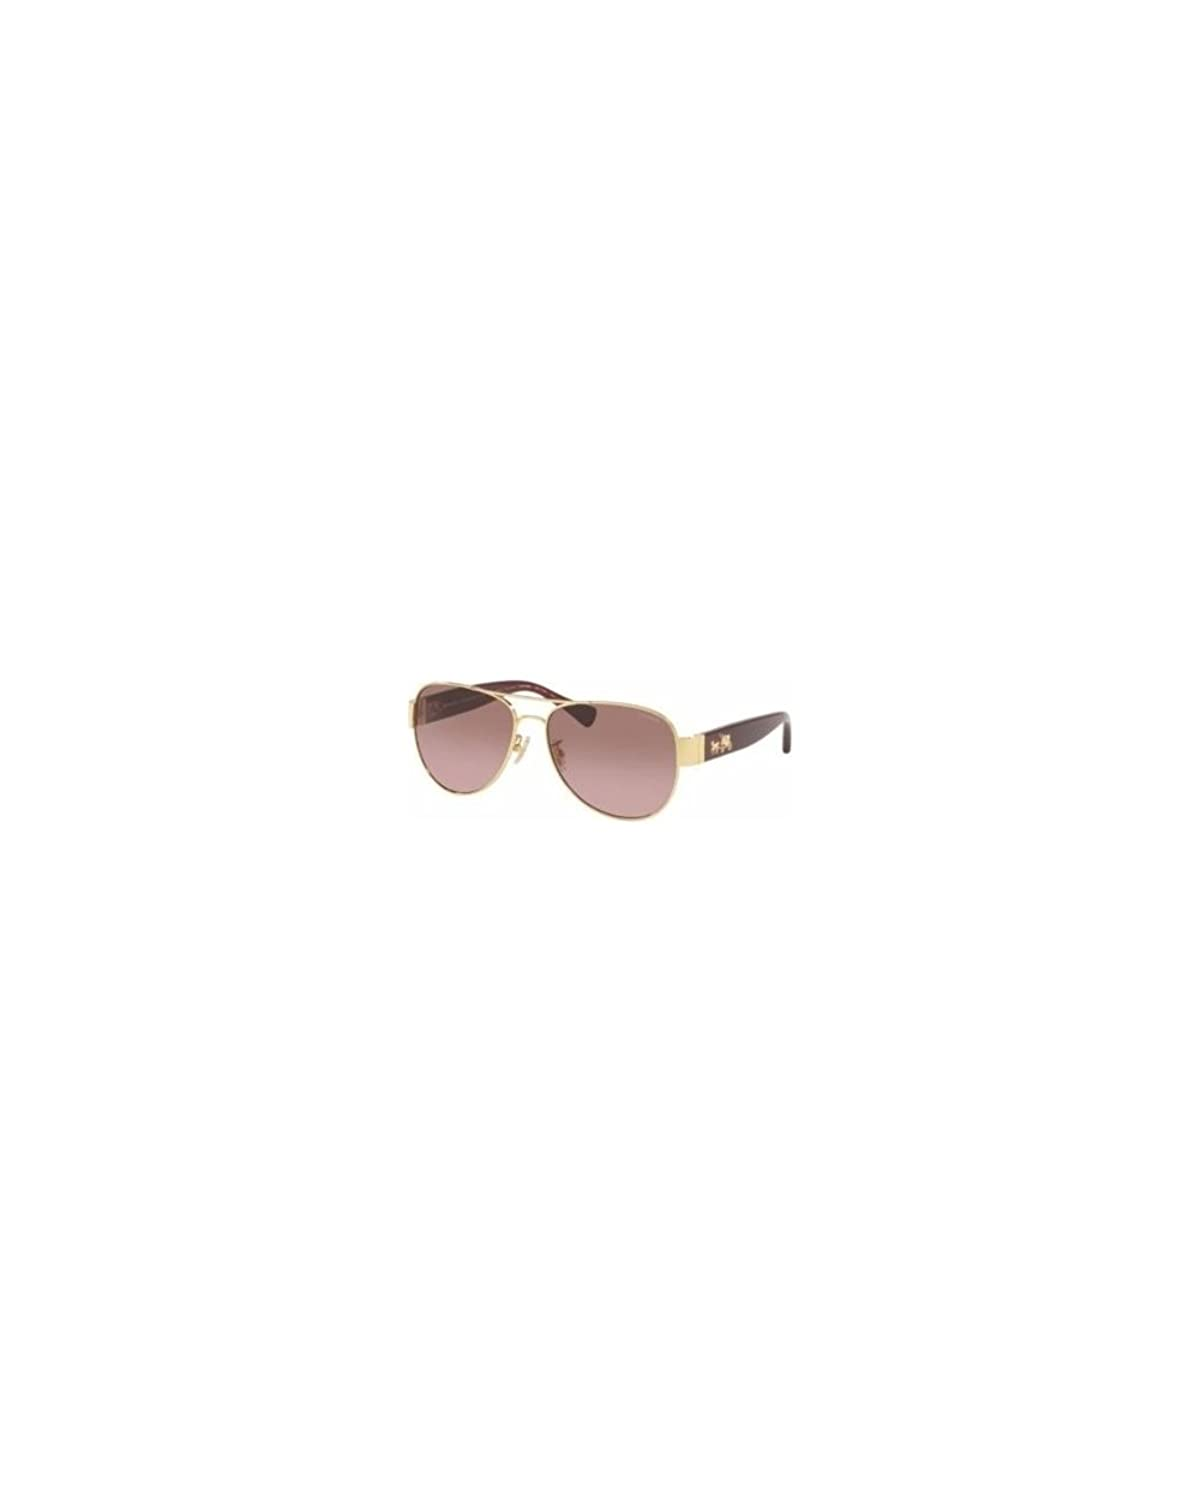 5672b7adc6ff ... hc 7059 l138 923813 gold 43f42 f124c switzerland coach womens l138  sunglasses hc7059 metal f5473 fca38 ...